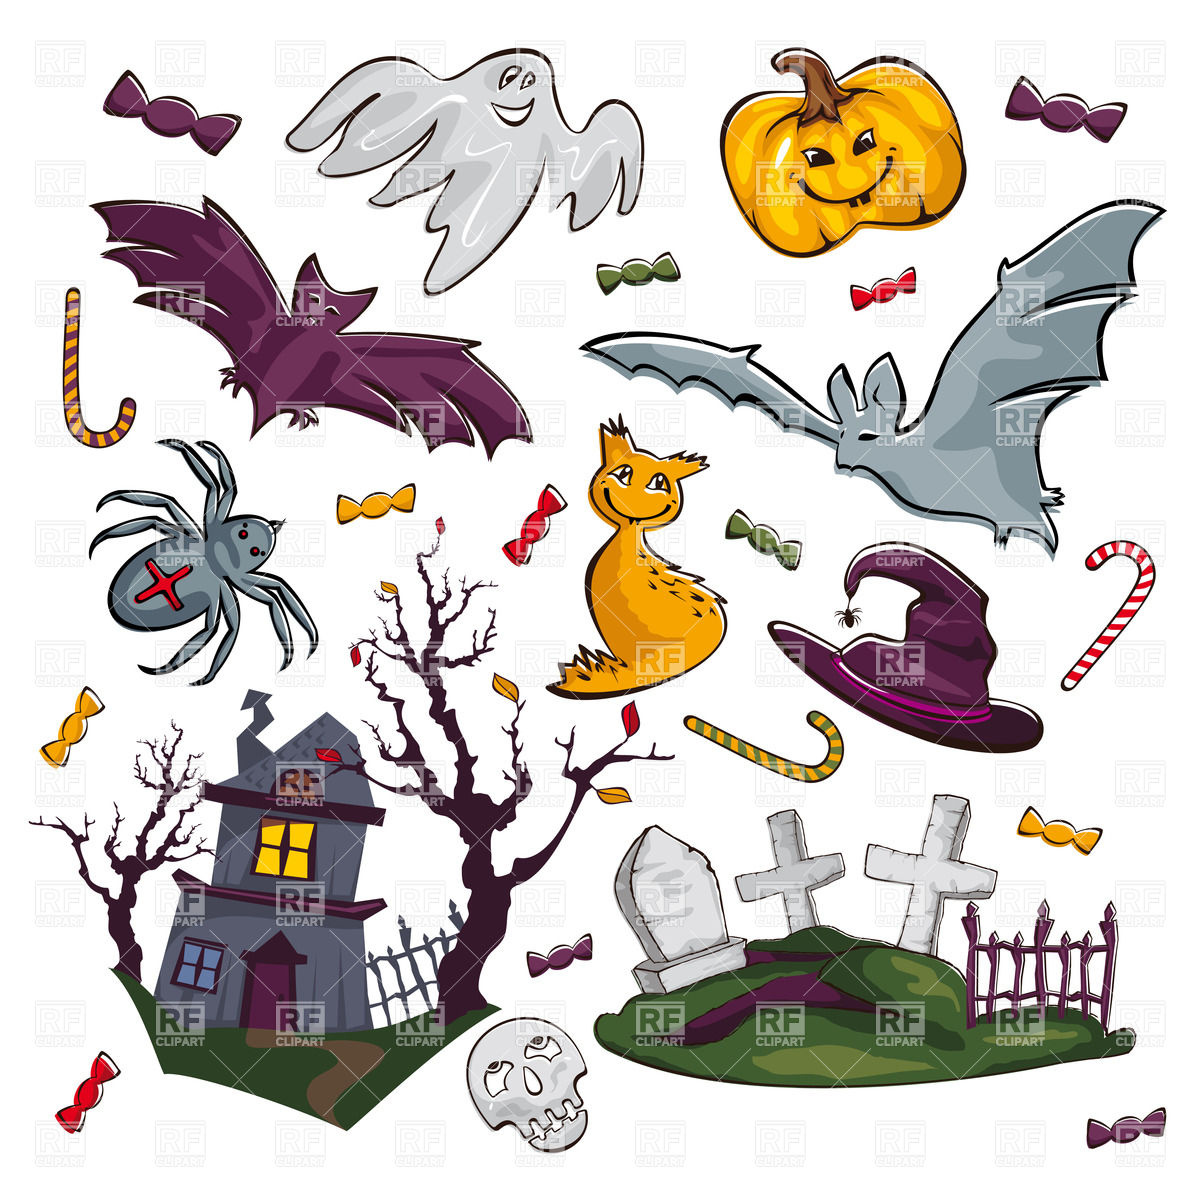 Free clipart images abandoned houses.